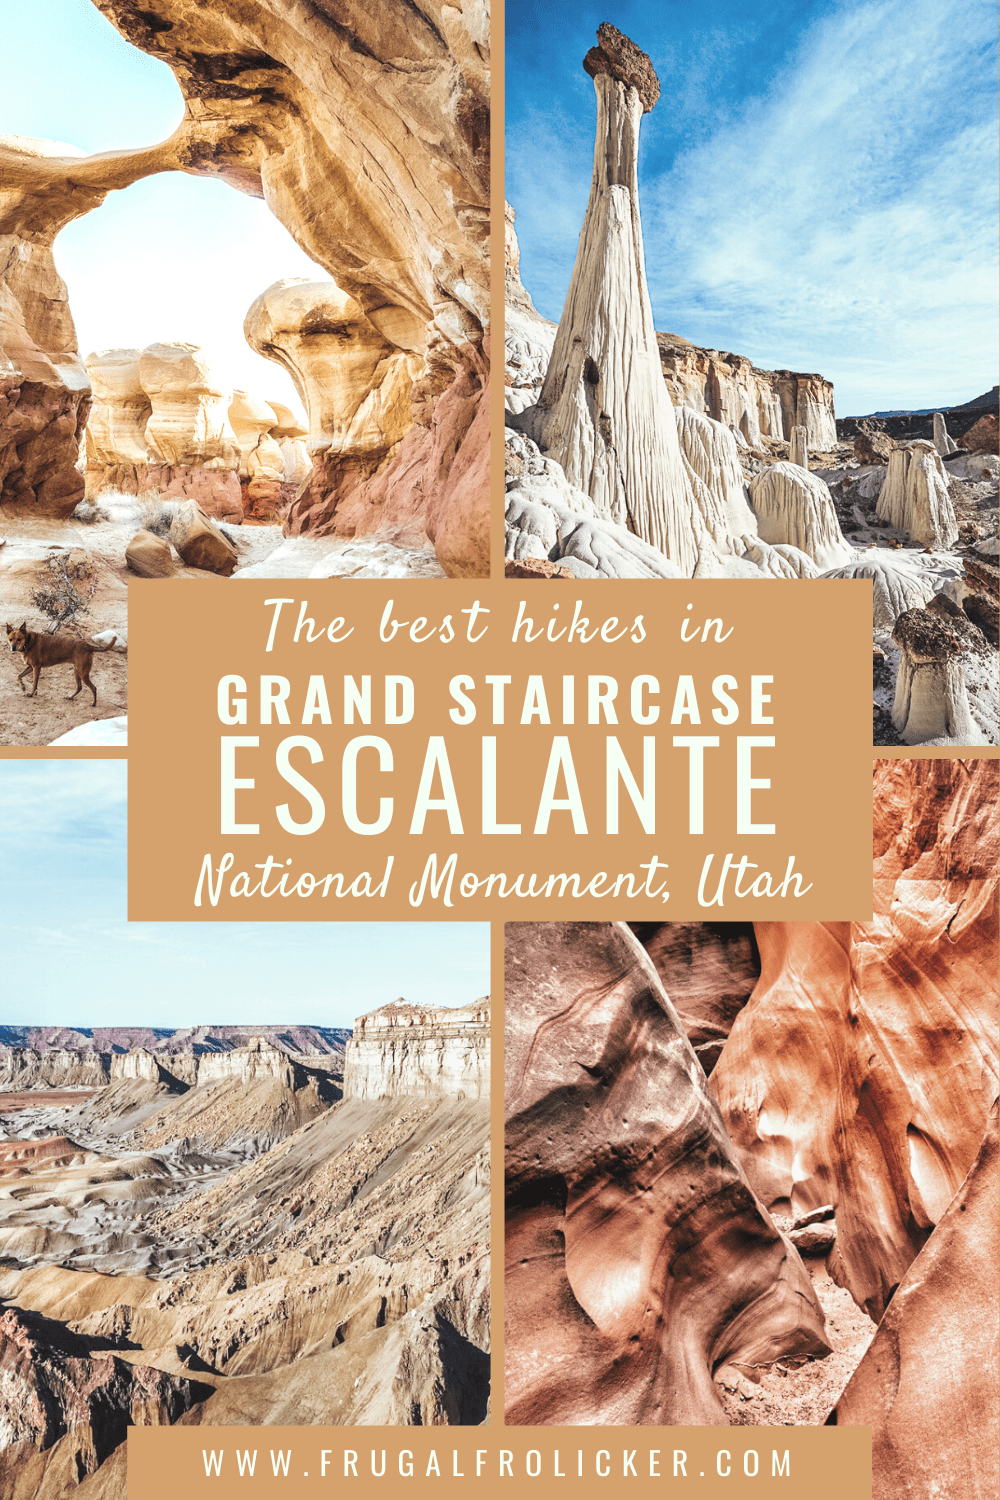 Best Hikes in Grand Staircase Escalante National Monument